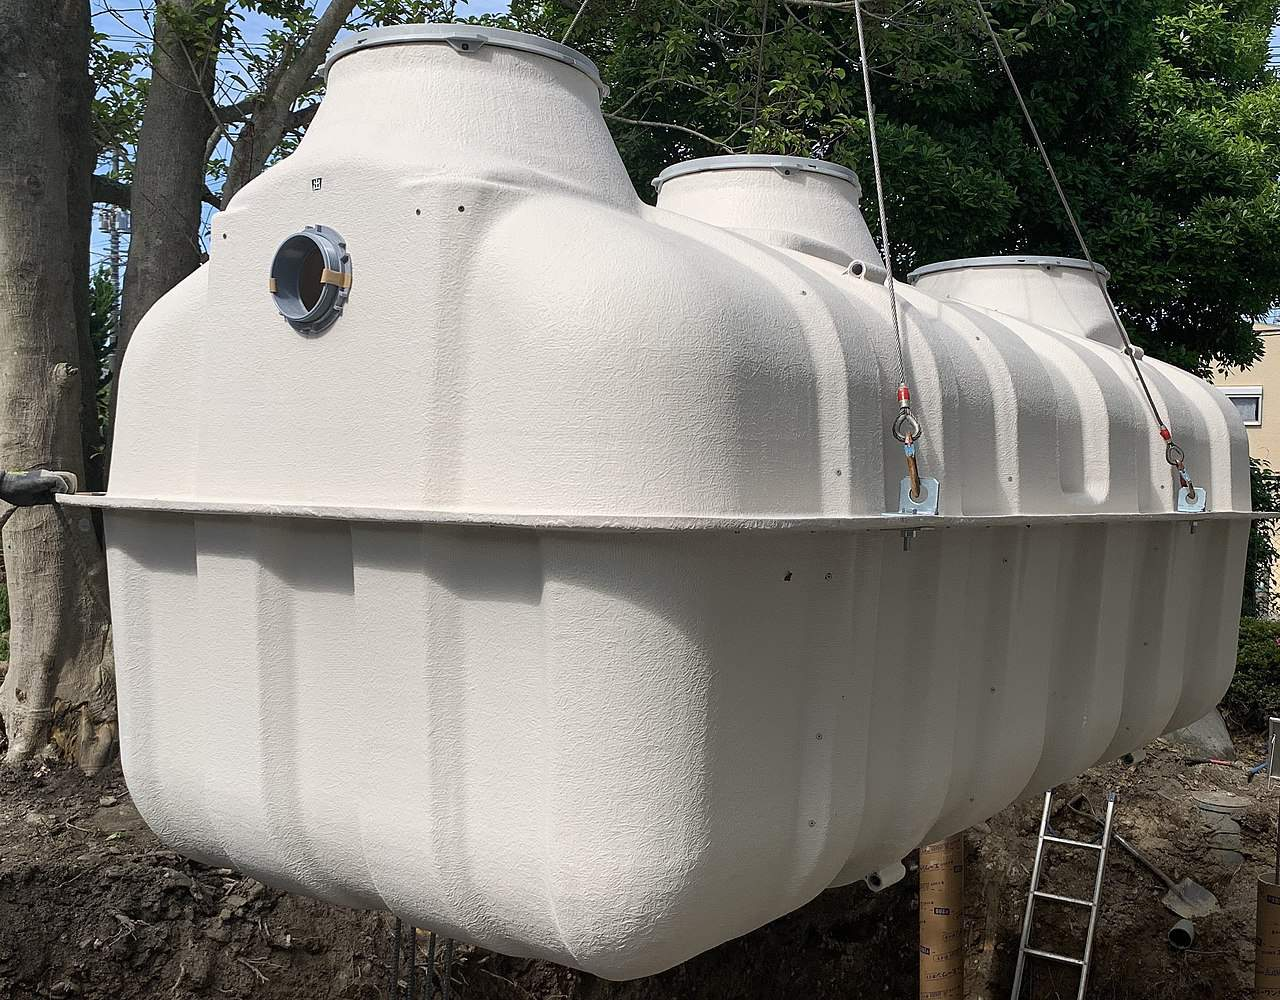 Common Causes of Septic Tank Damage